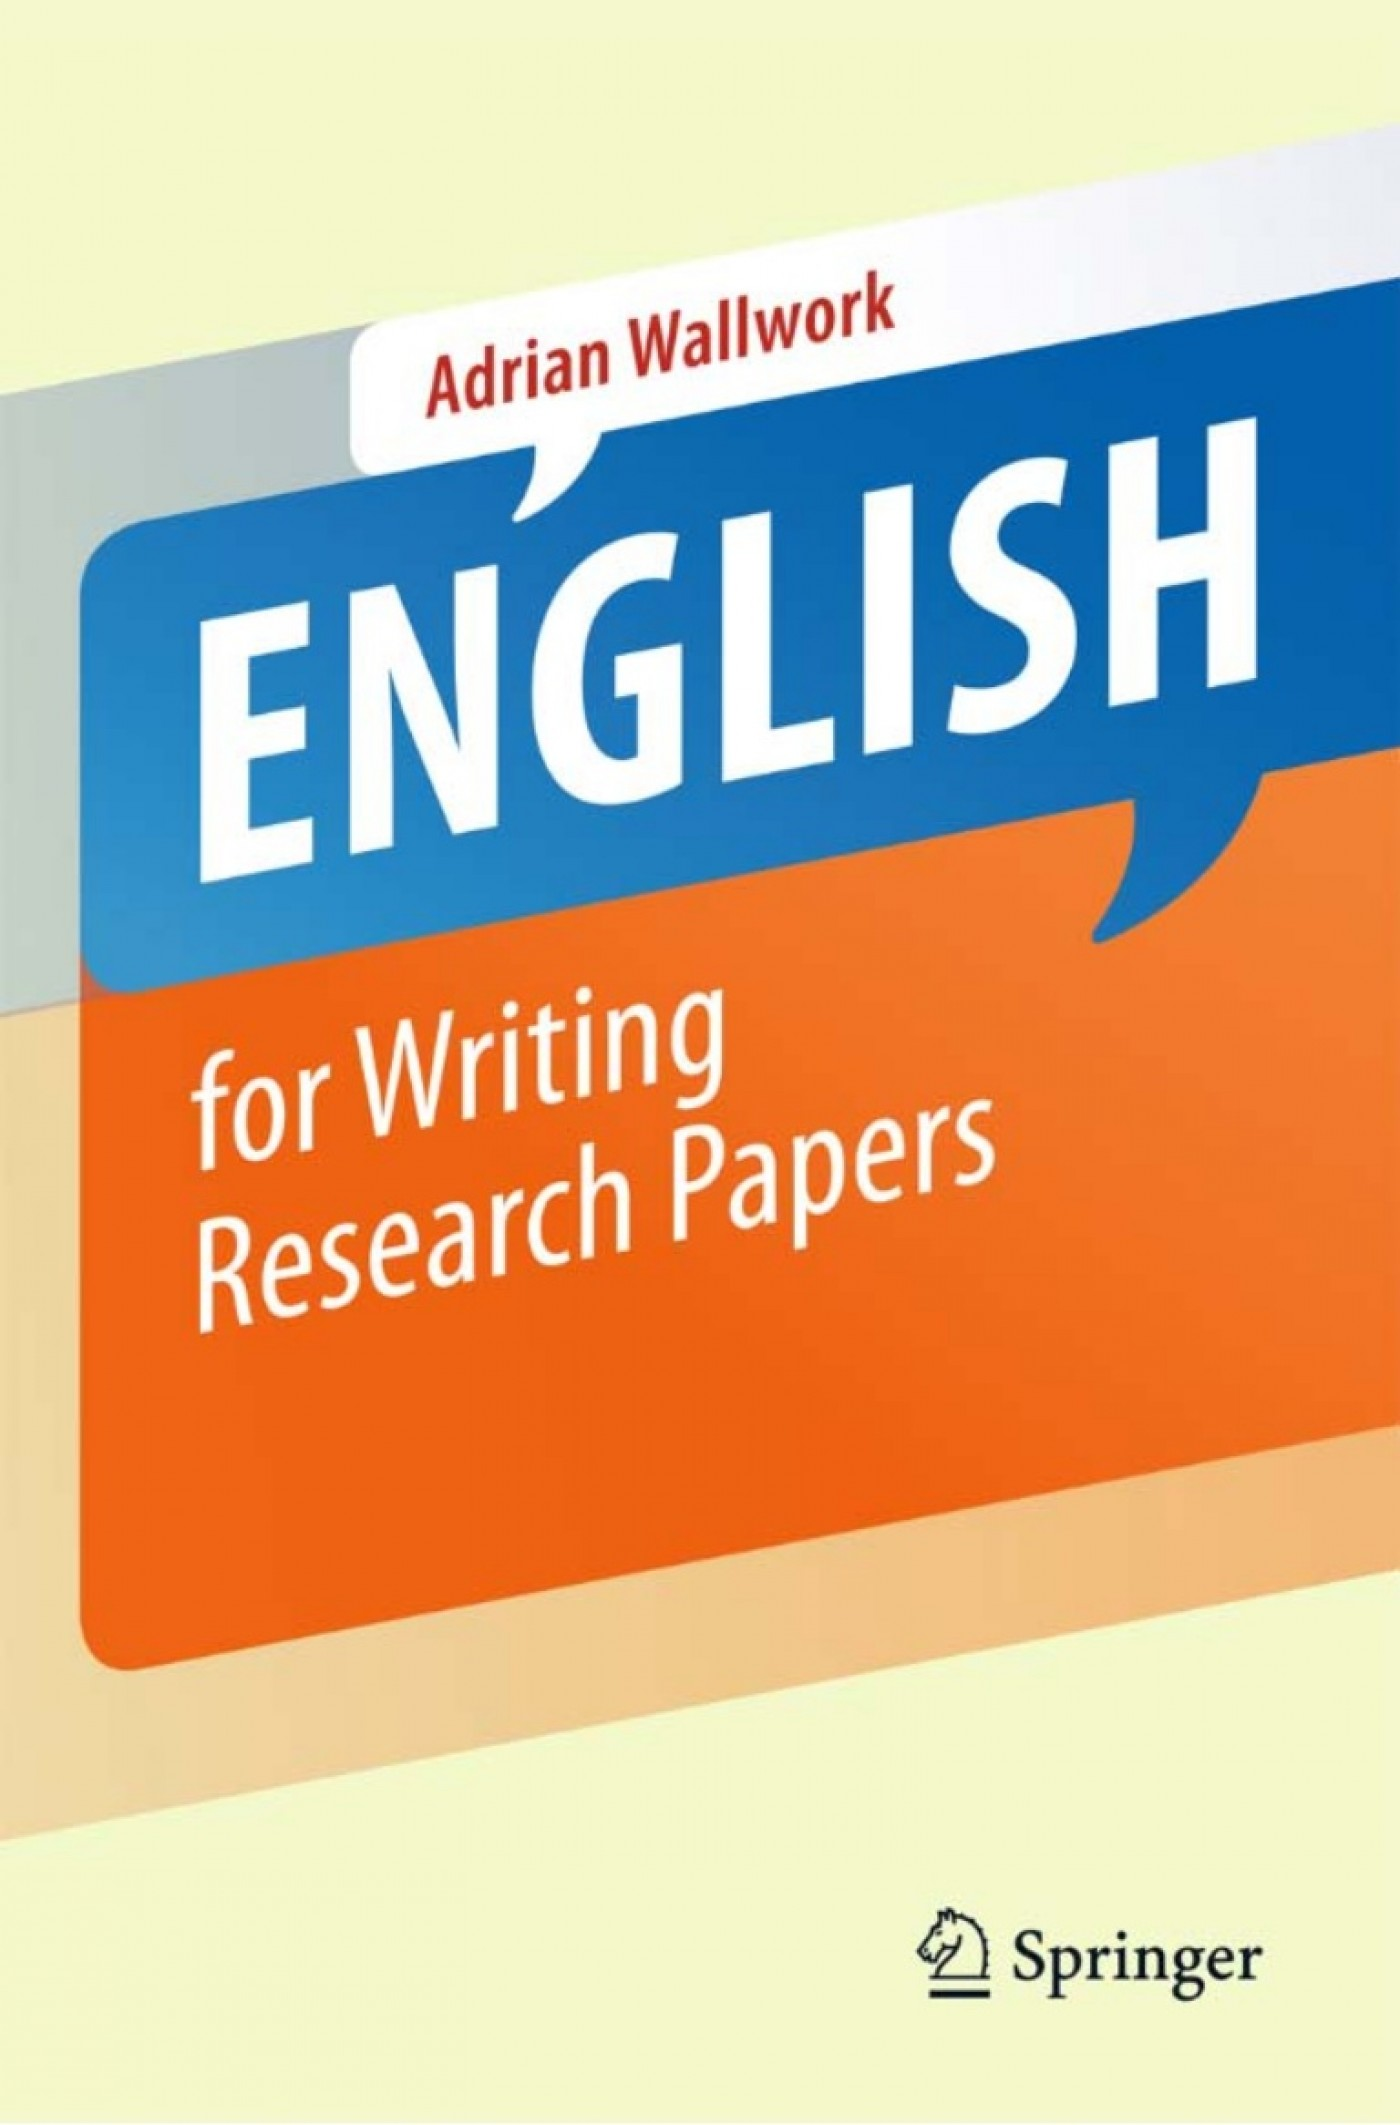 016 Research Paper Writing Papers Englishforwritingresearchpapers Conversion Gate01 Thumbnail Unique A Complete Guide Pdf Download James D Lester 1400